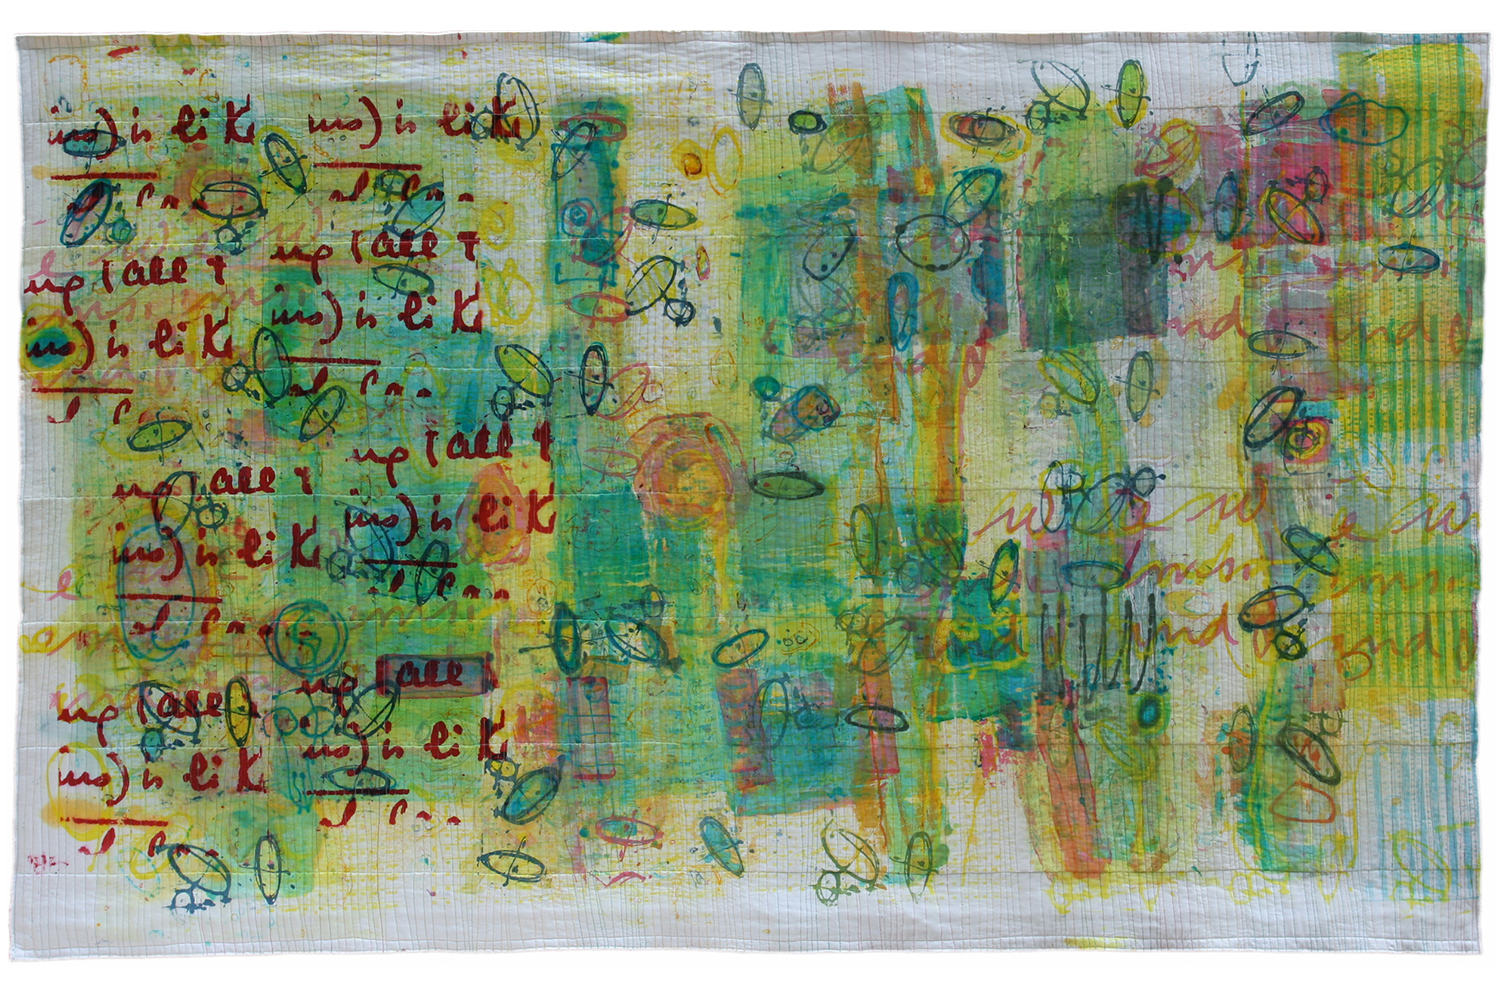 LANGUAGE AND THOUGHT 44 × 70